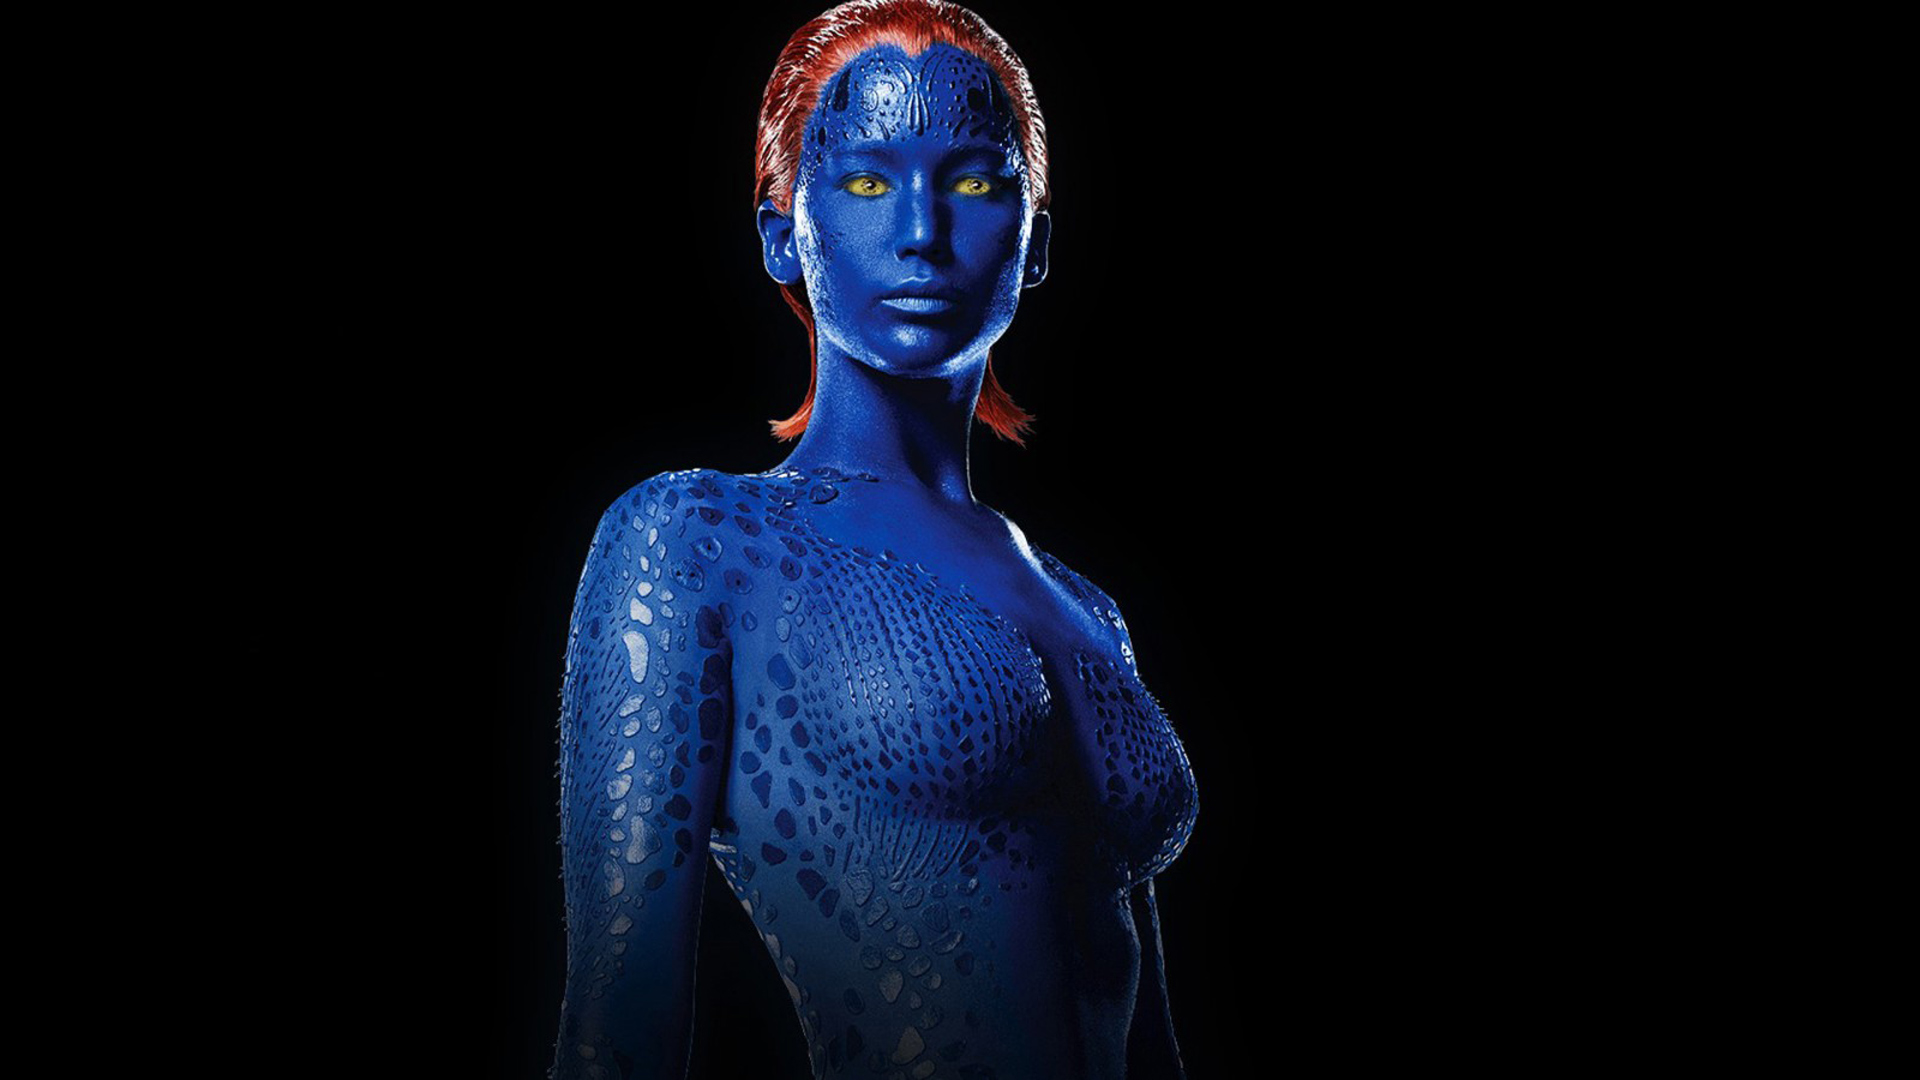 Men Days of Future Past Mystique 2j HD WallpaperX Men Days Of Future Past Mystique Jennifer Lawrence